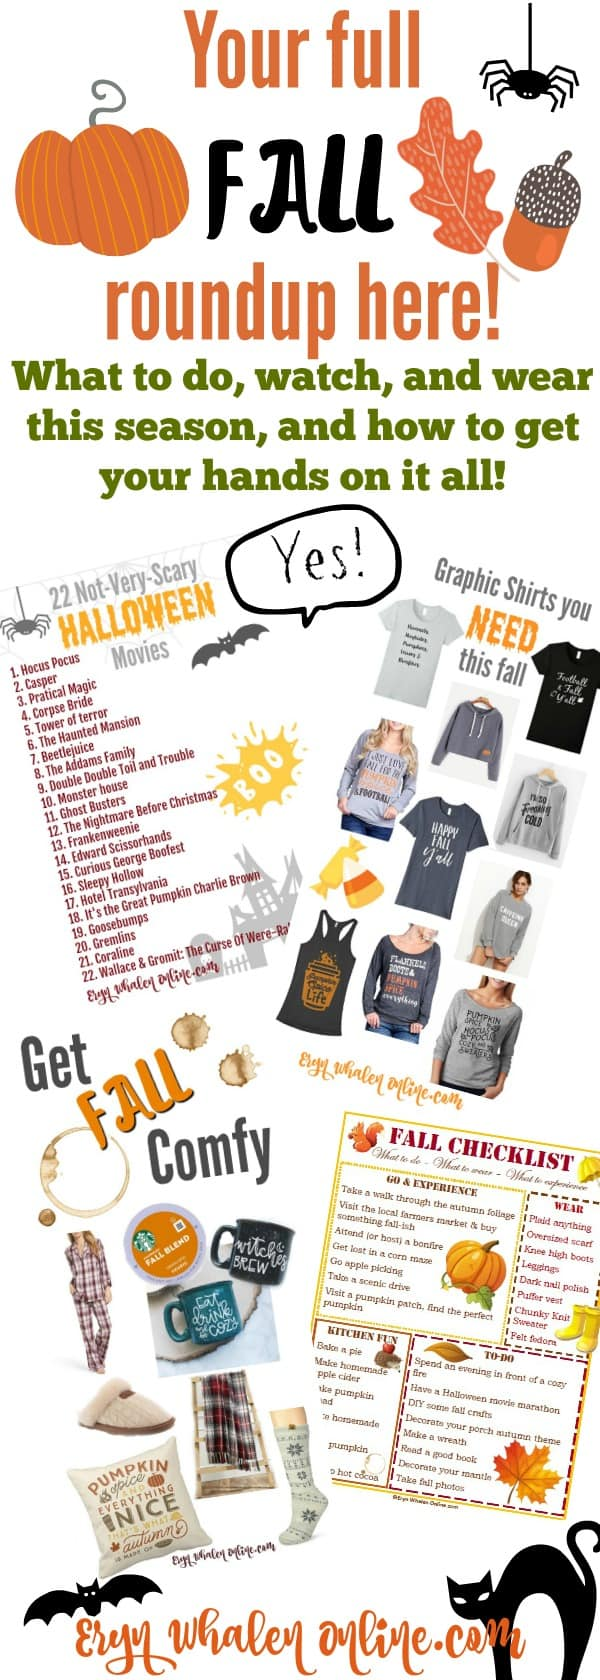 Fall, fall printables, graphic shirts, graphic fall shirts, fall fashion, fall clothes, coffee, coffee mugs, autumn, fall checklist, fall things to do, fall roundup, fall fun